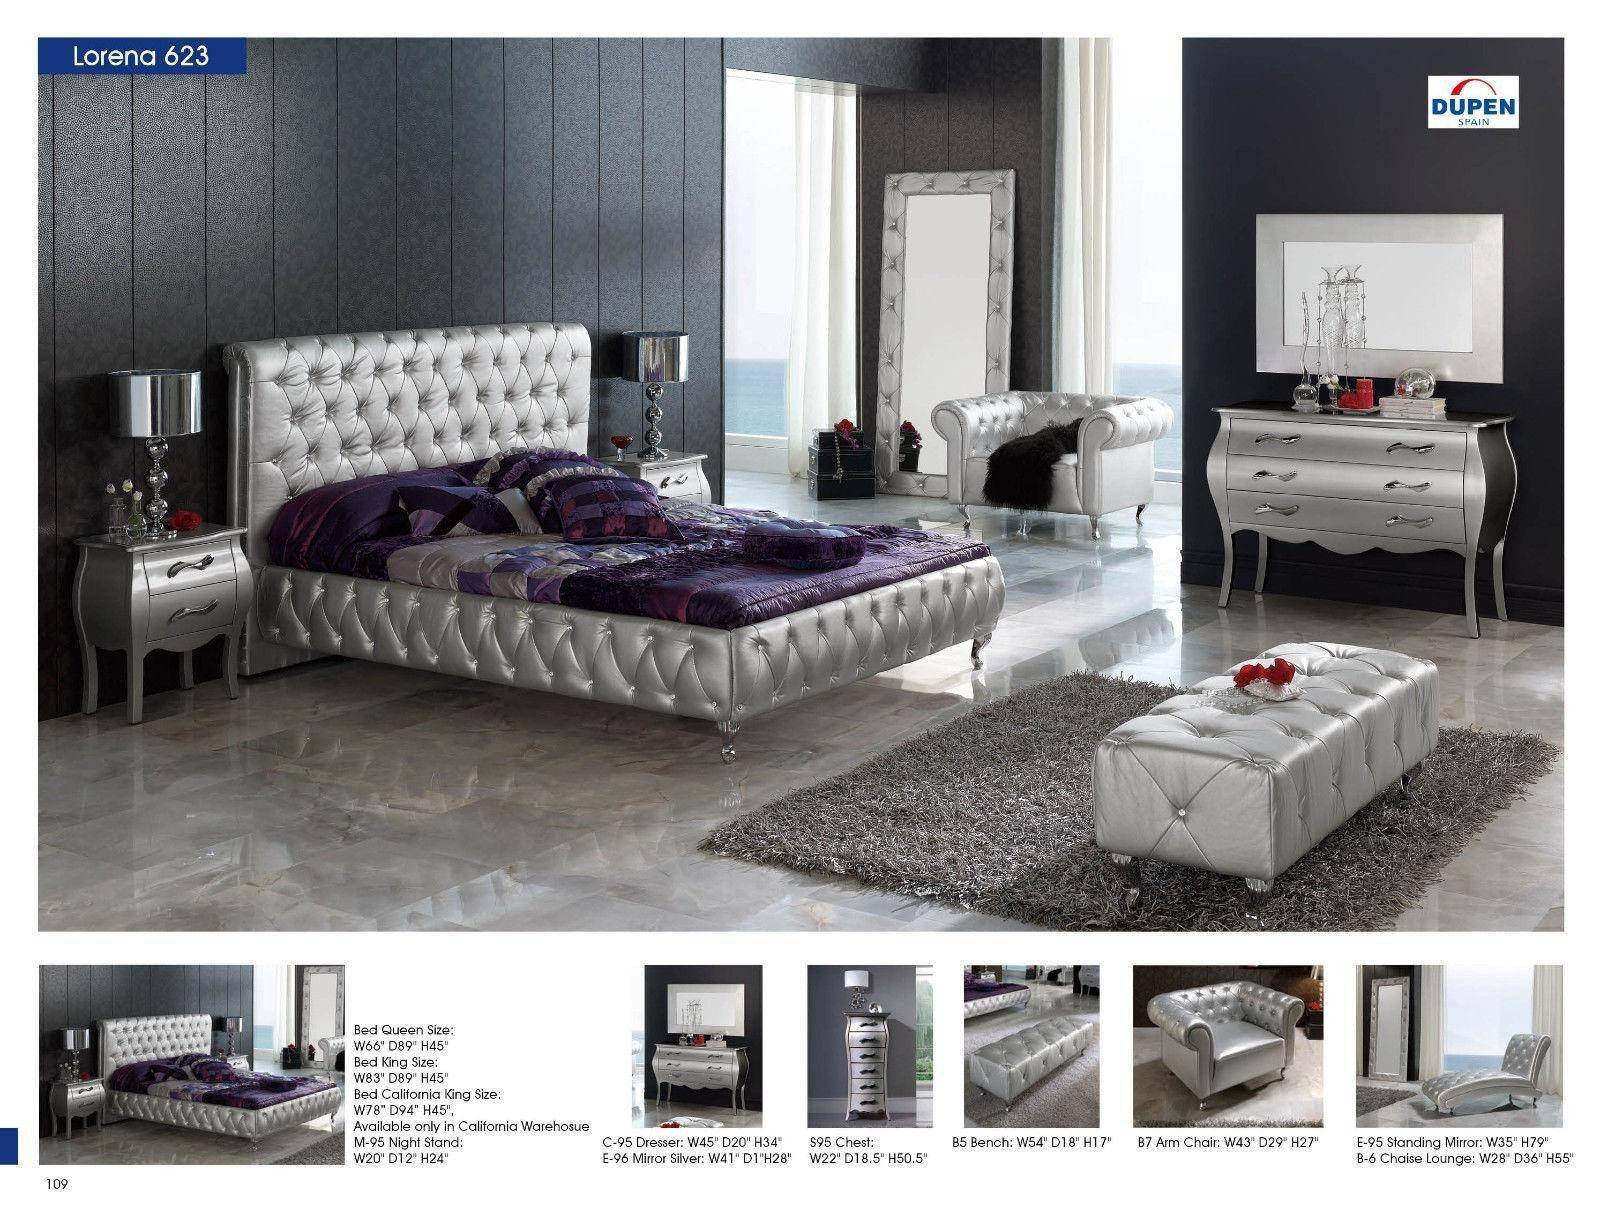 Tufted Queen Bedroom Set New Esf 623 Lorena Silver button Tufted Queen Bedroom Set 3